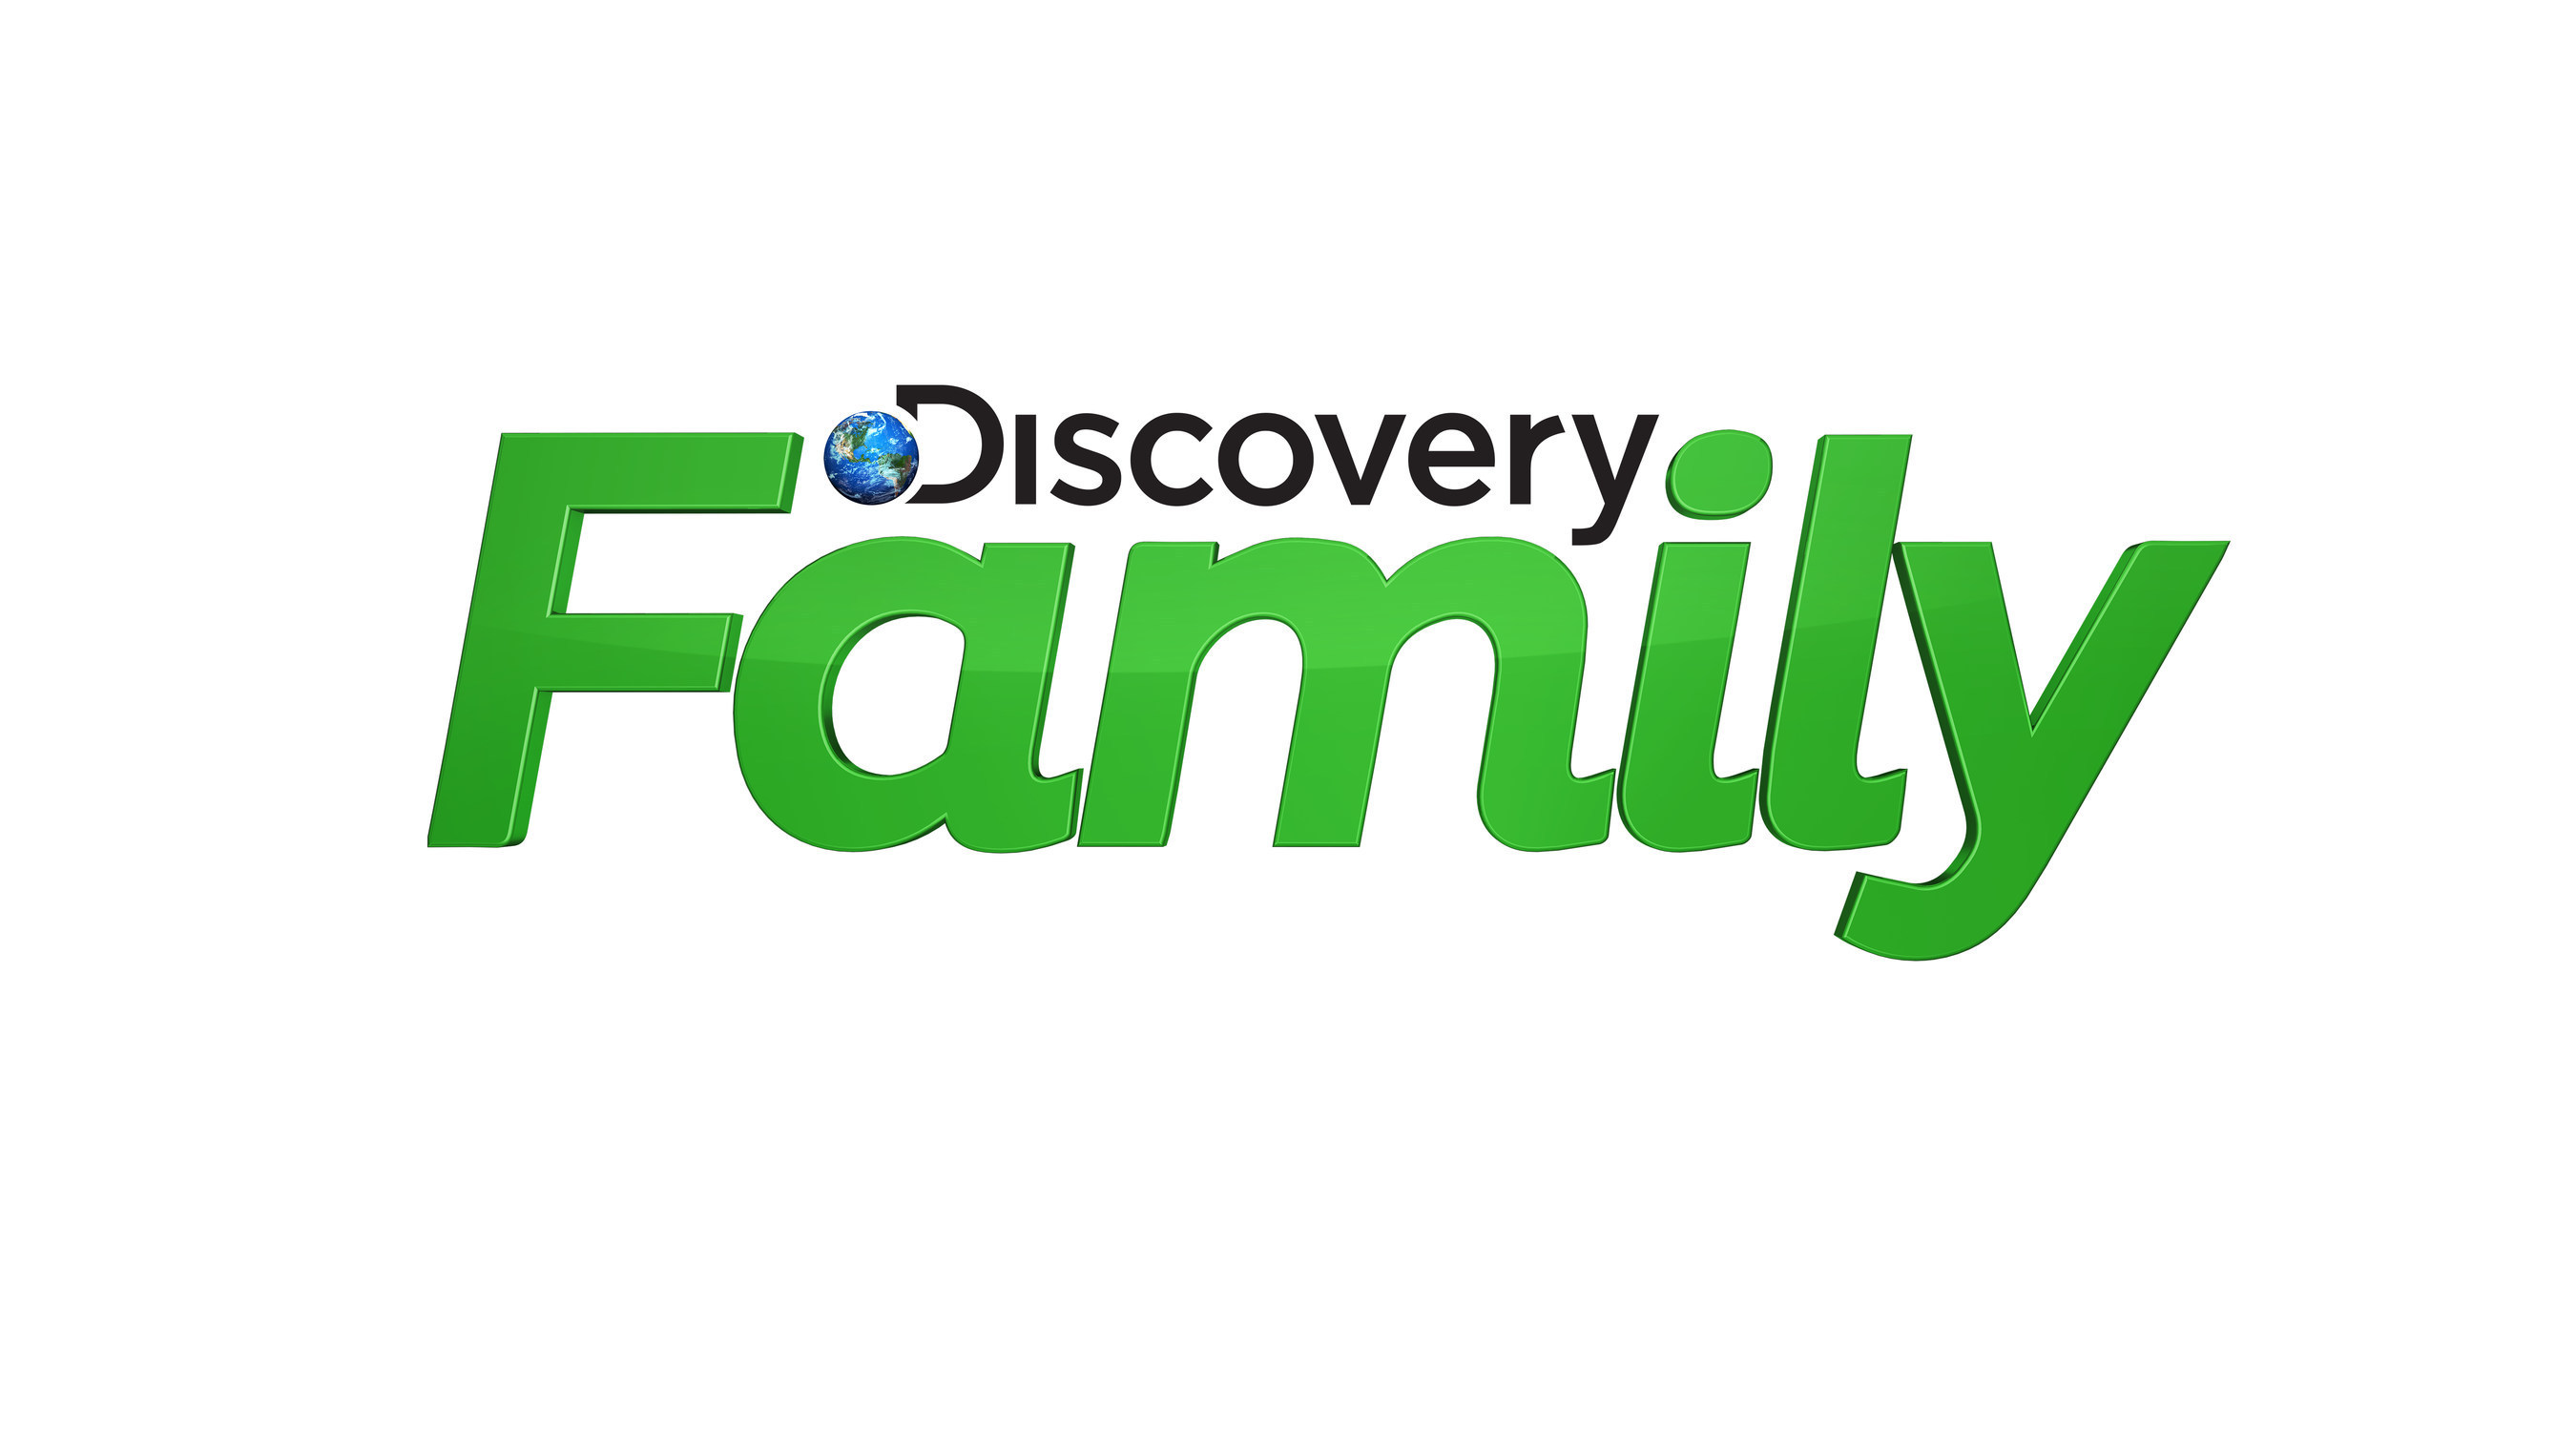 discoveryfamily adds shows about home design, cooking to schedule